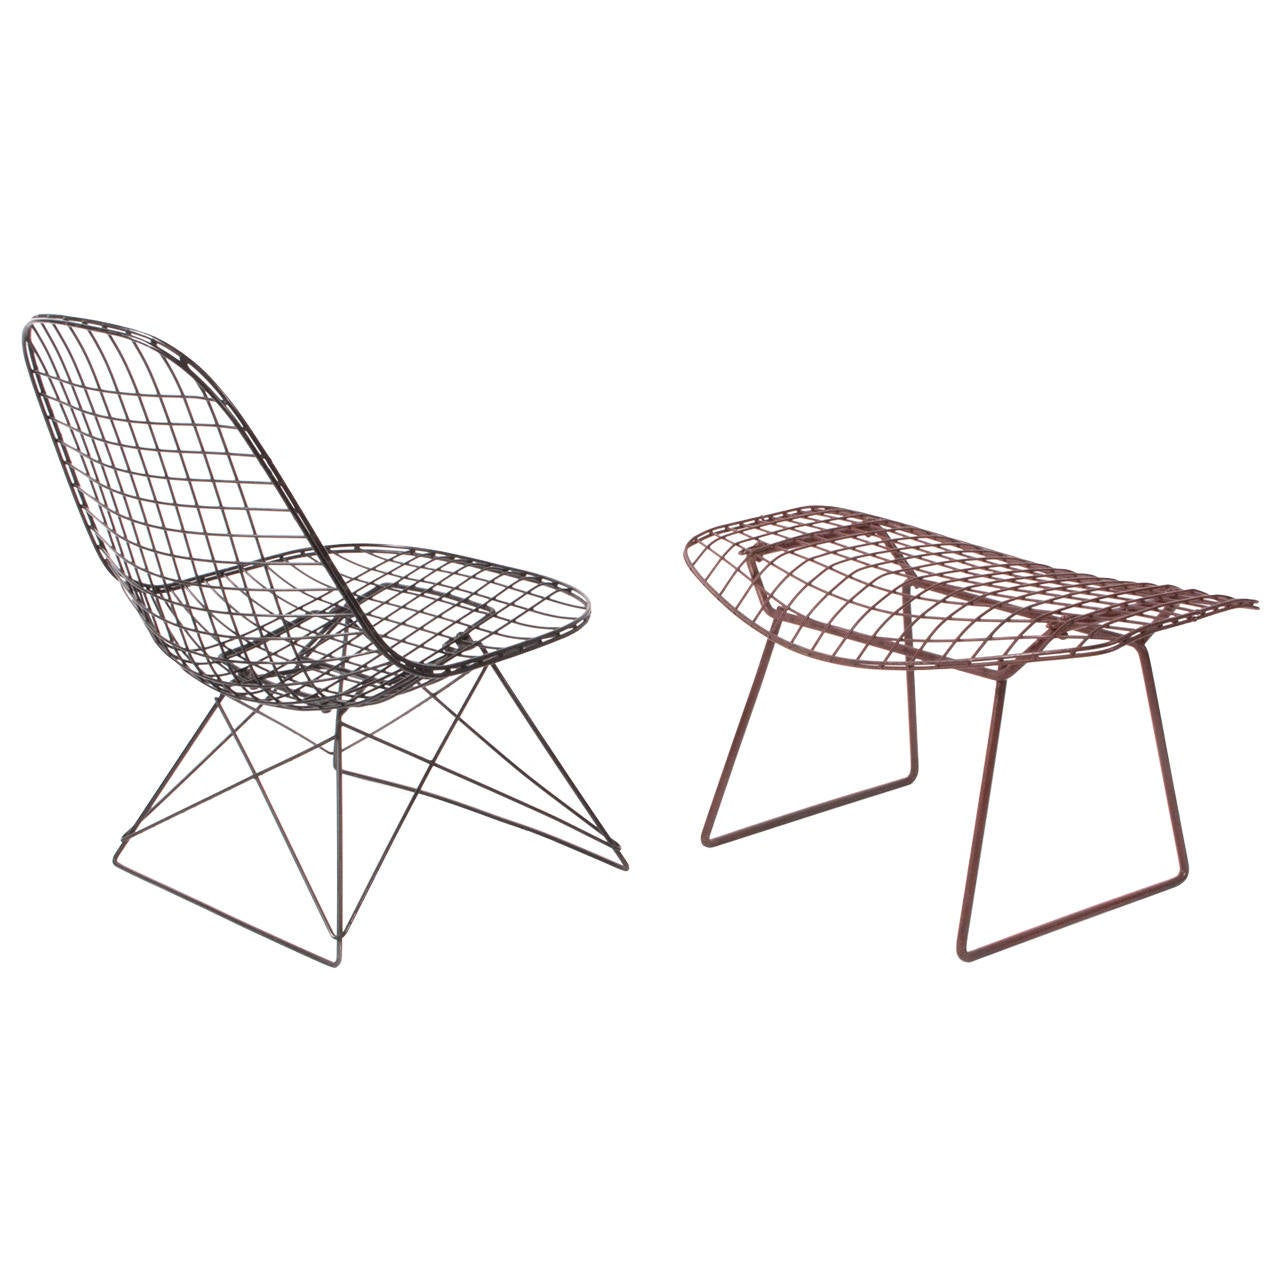 Bertoia Wire Chair lkr-2 charles eames wire lounge chair and harry bertoia wire